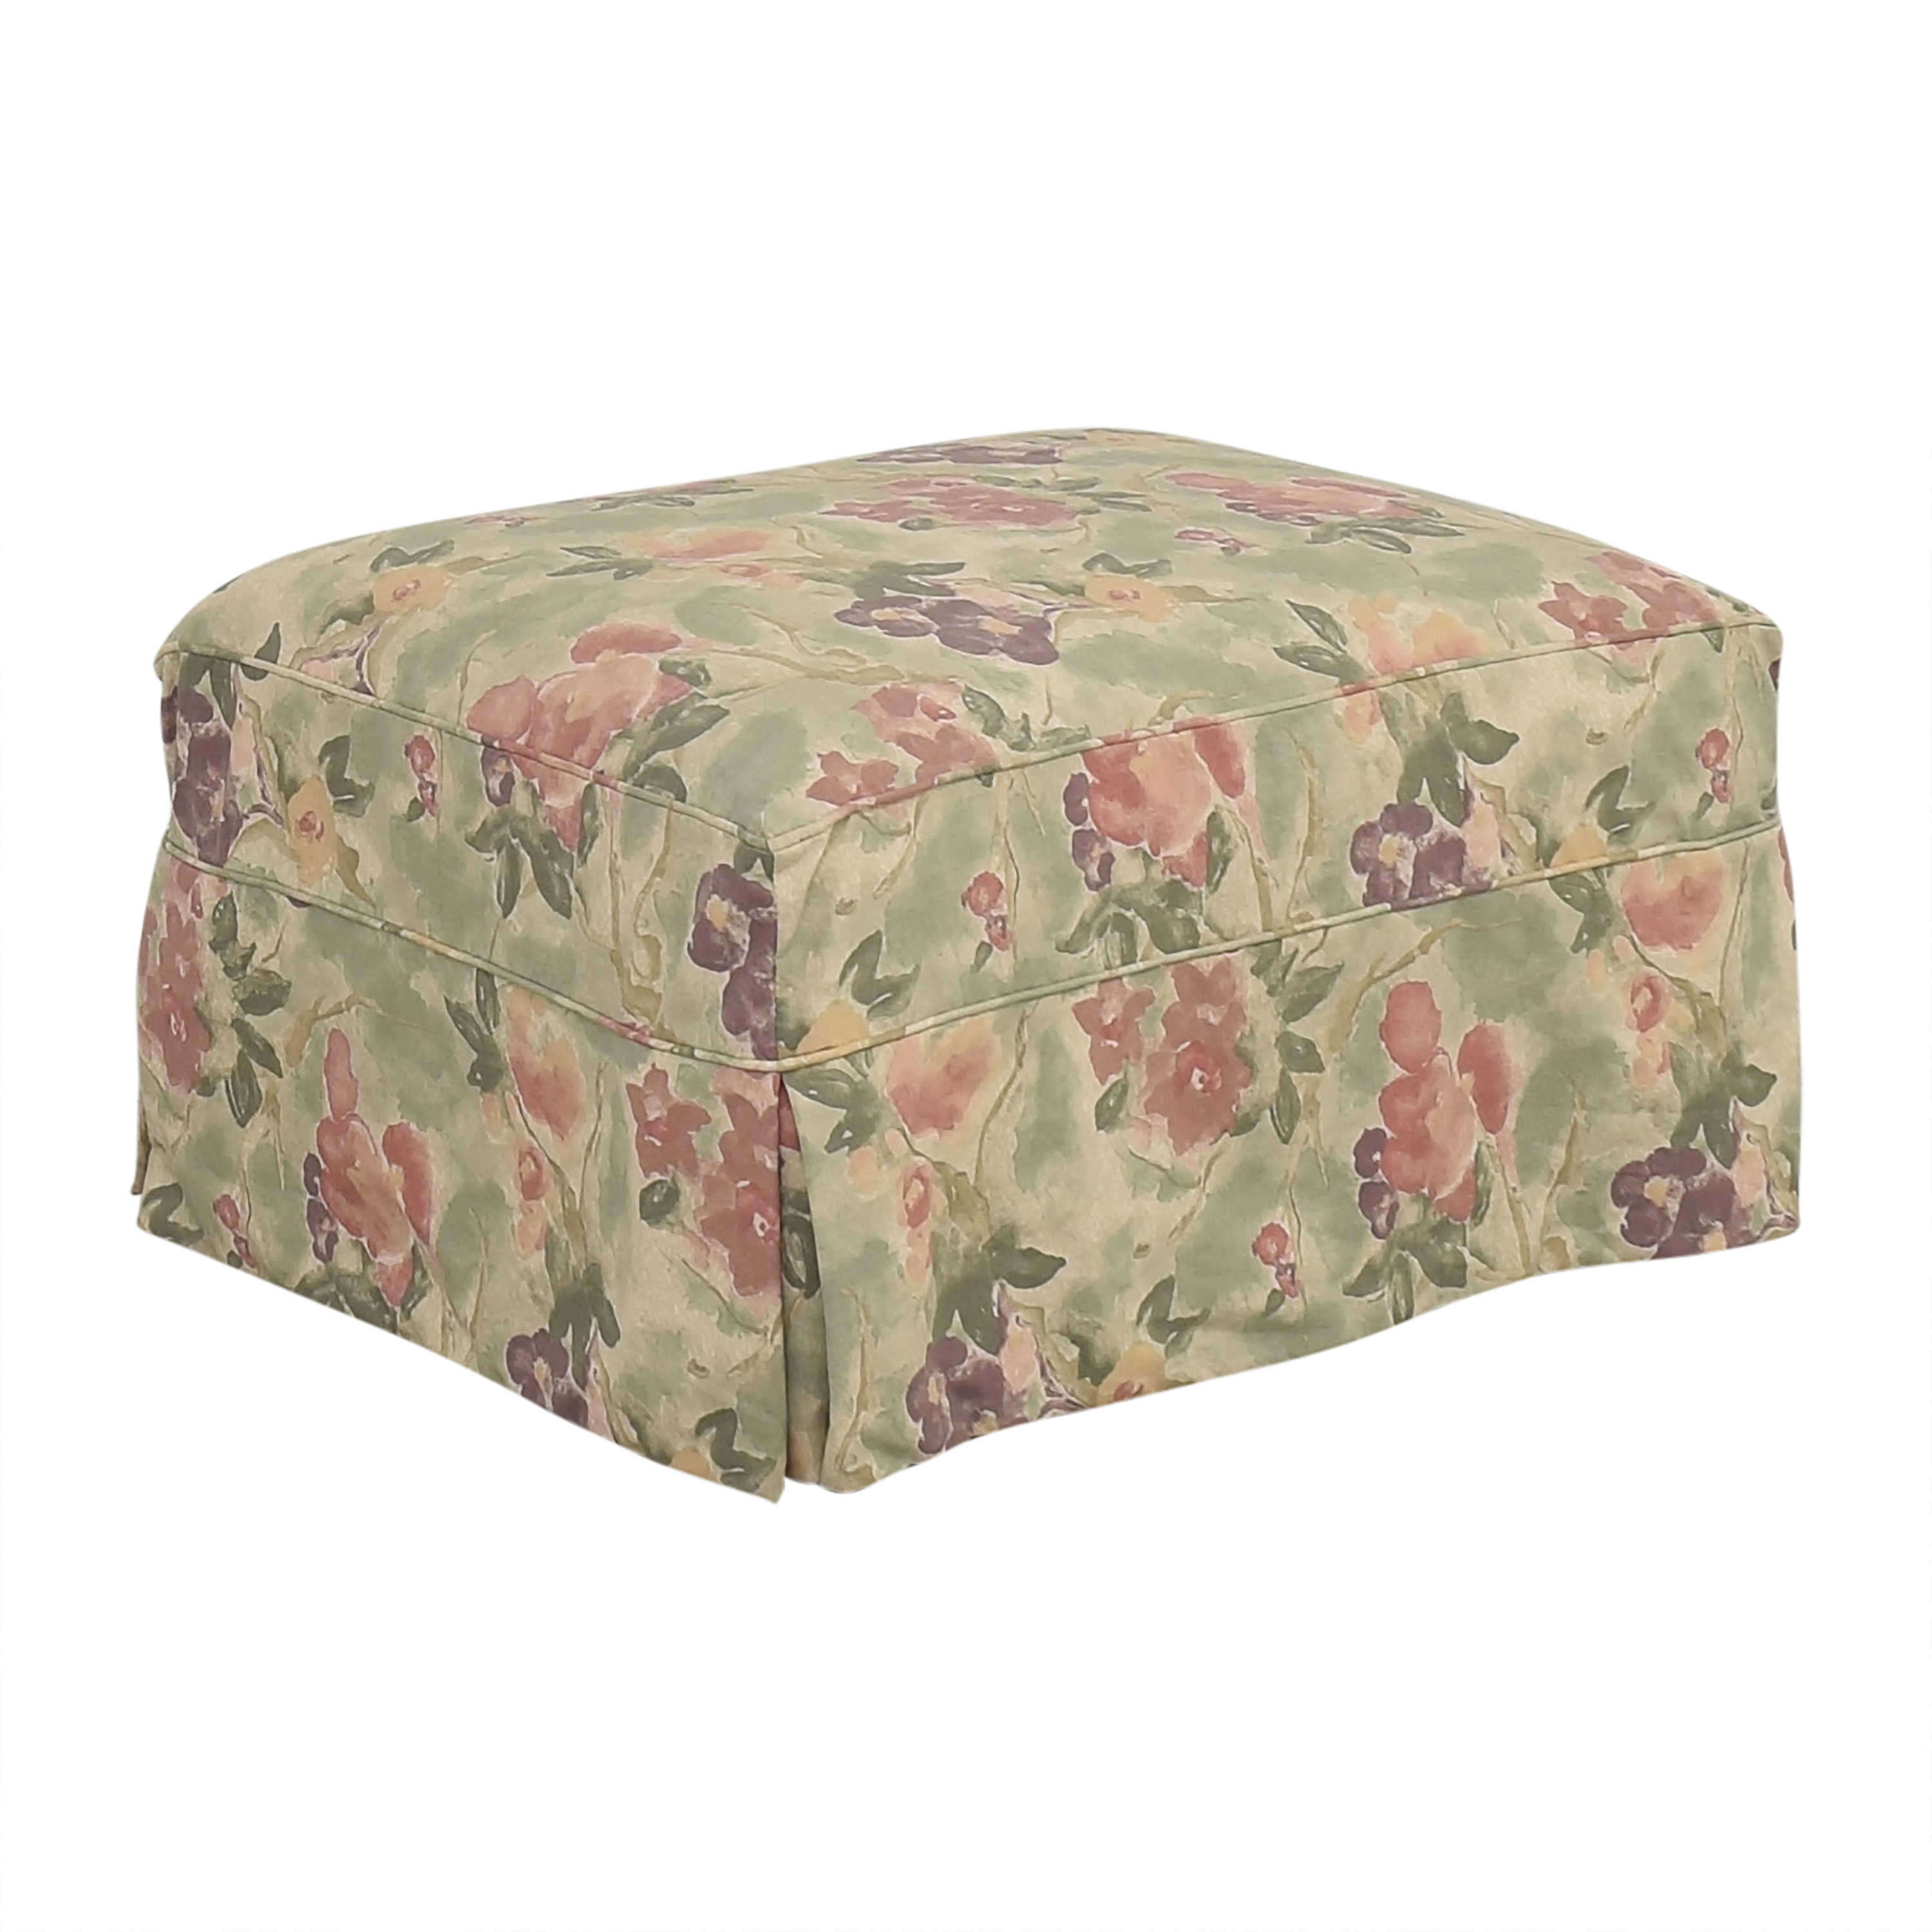 Crate & Barrel Crate & Barrel Slipcovered Ottoman nyc